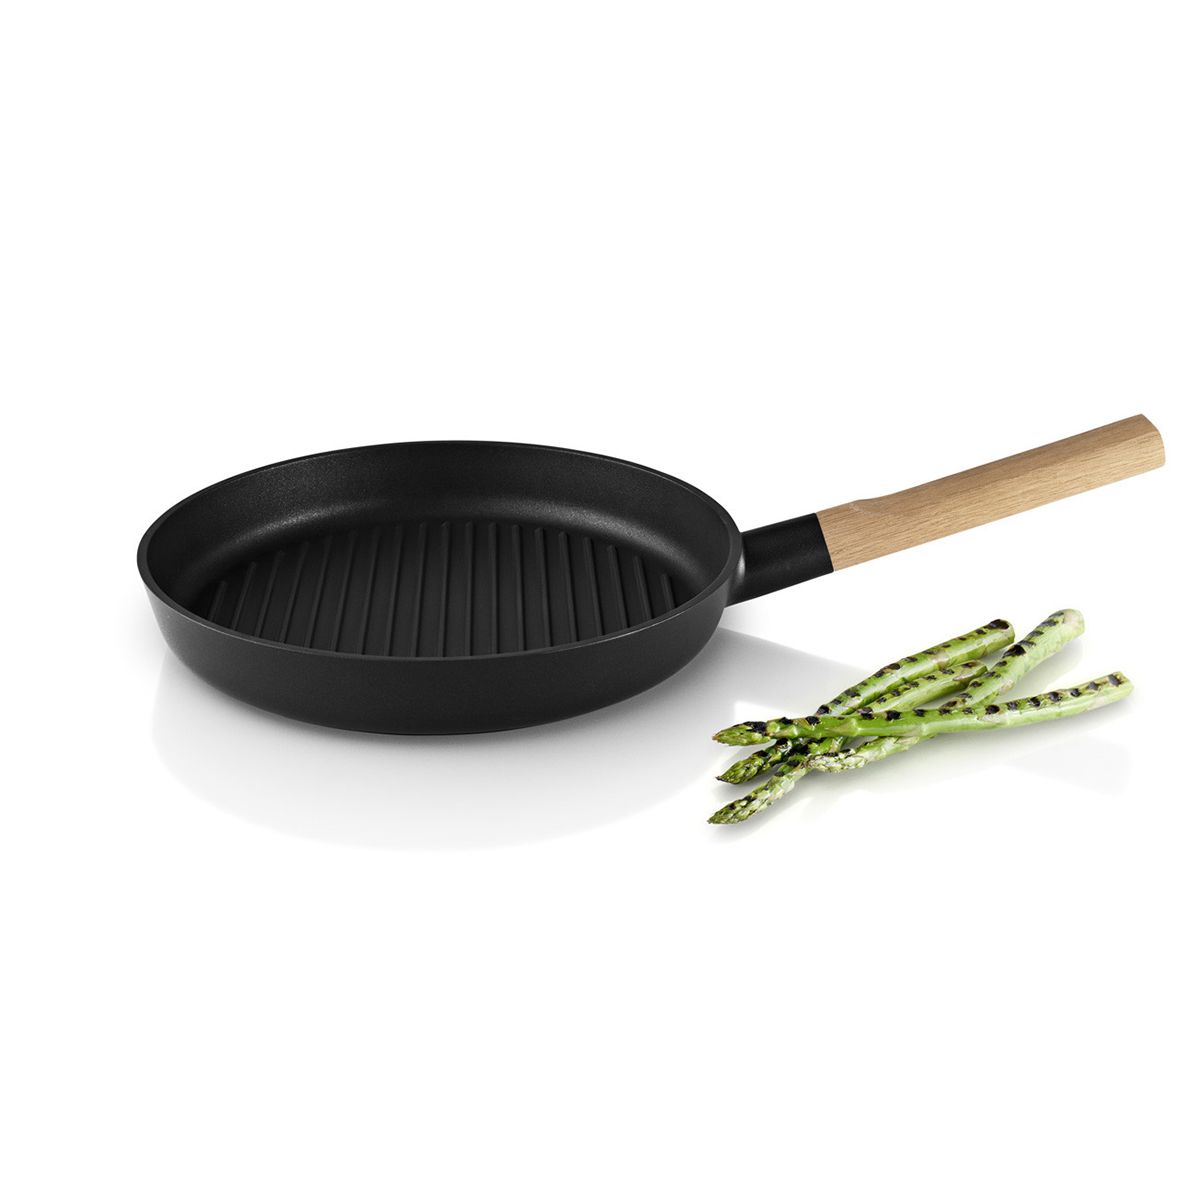 Eva Solo Nordic Kitchen Grill Frying Pan 28cm 自然歐風系列 木柄 橫紋煎鍋